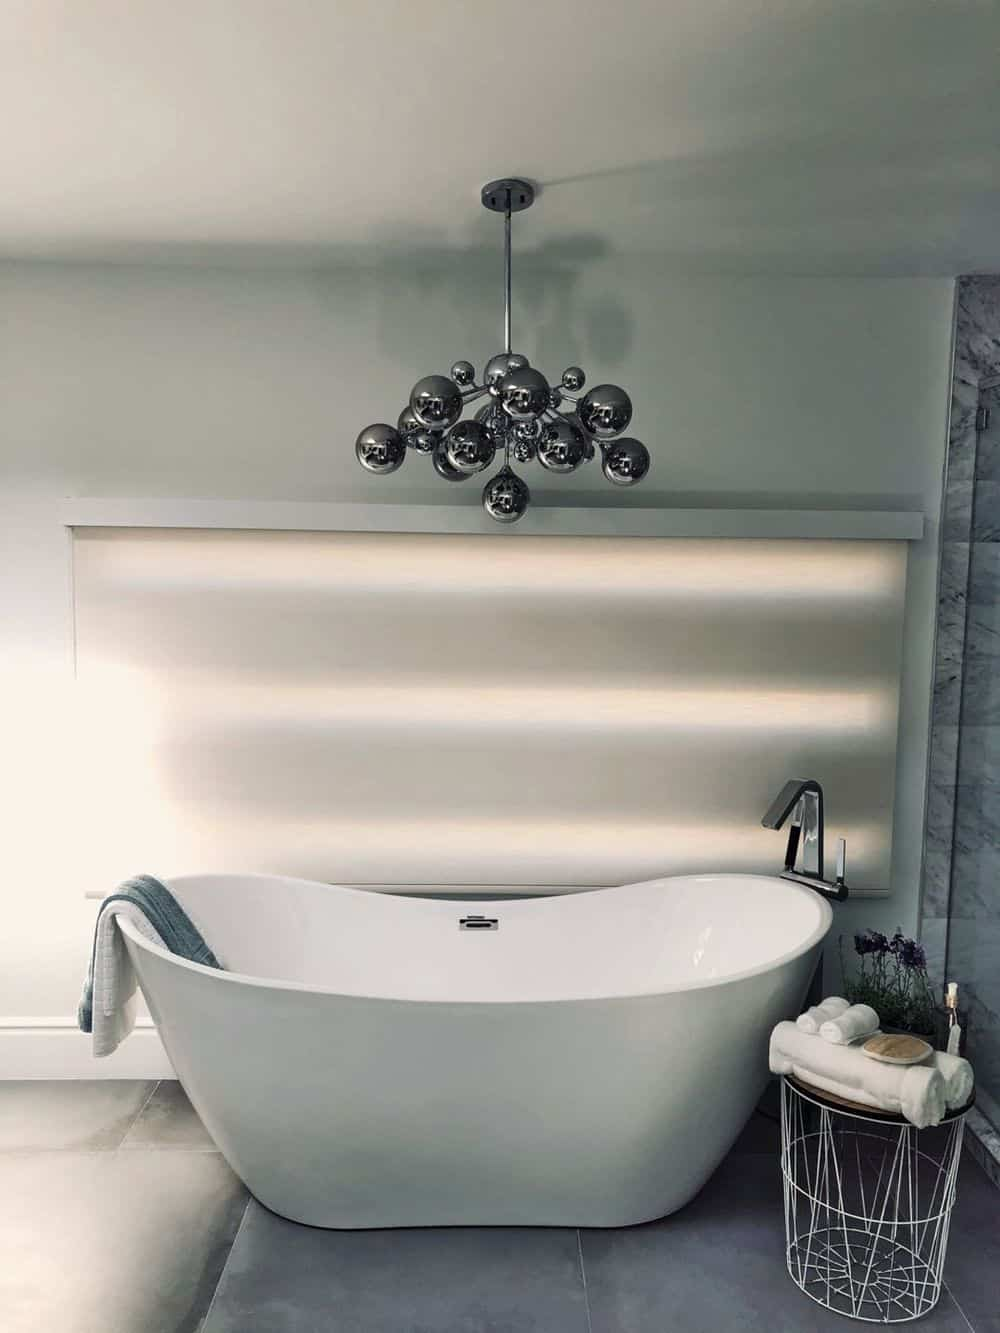 A focused look at this master bathroom's freestanding tub set next to the window featuring a roller window shade and is lighted by a modern chandelier.